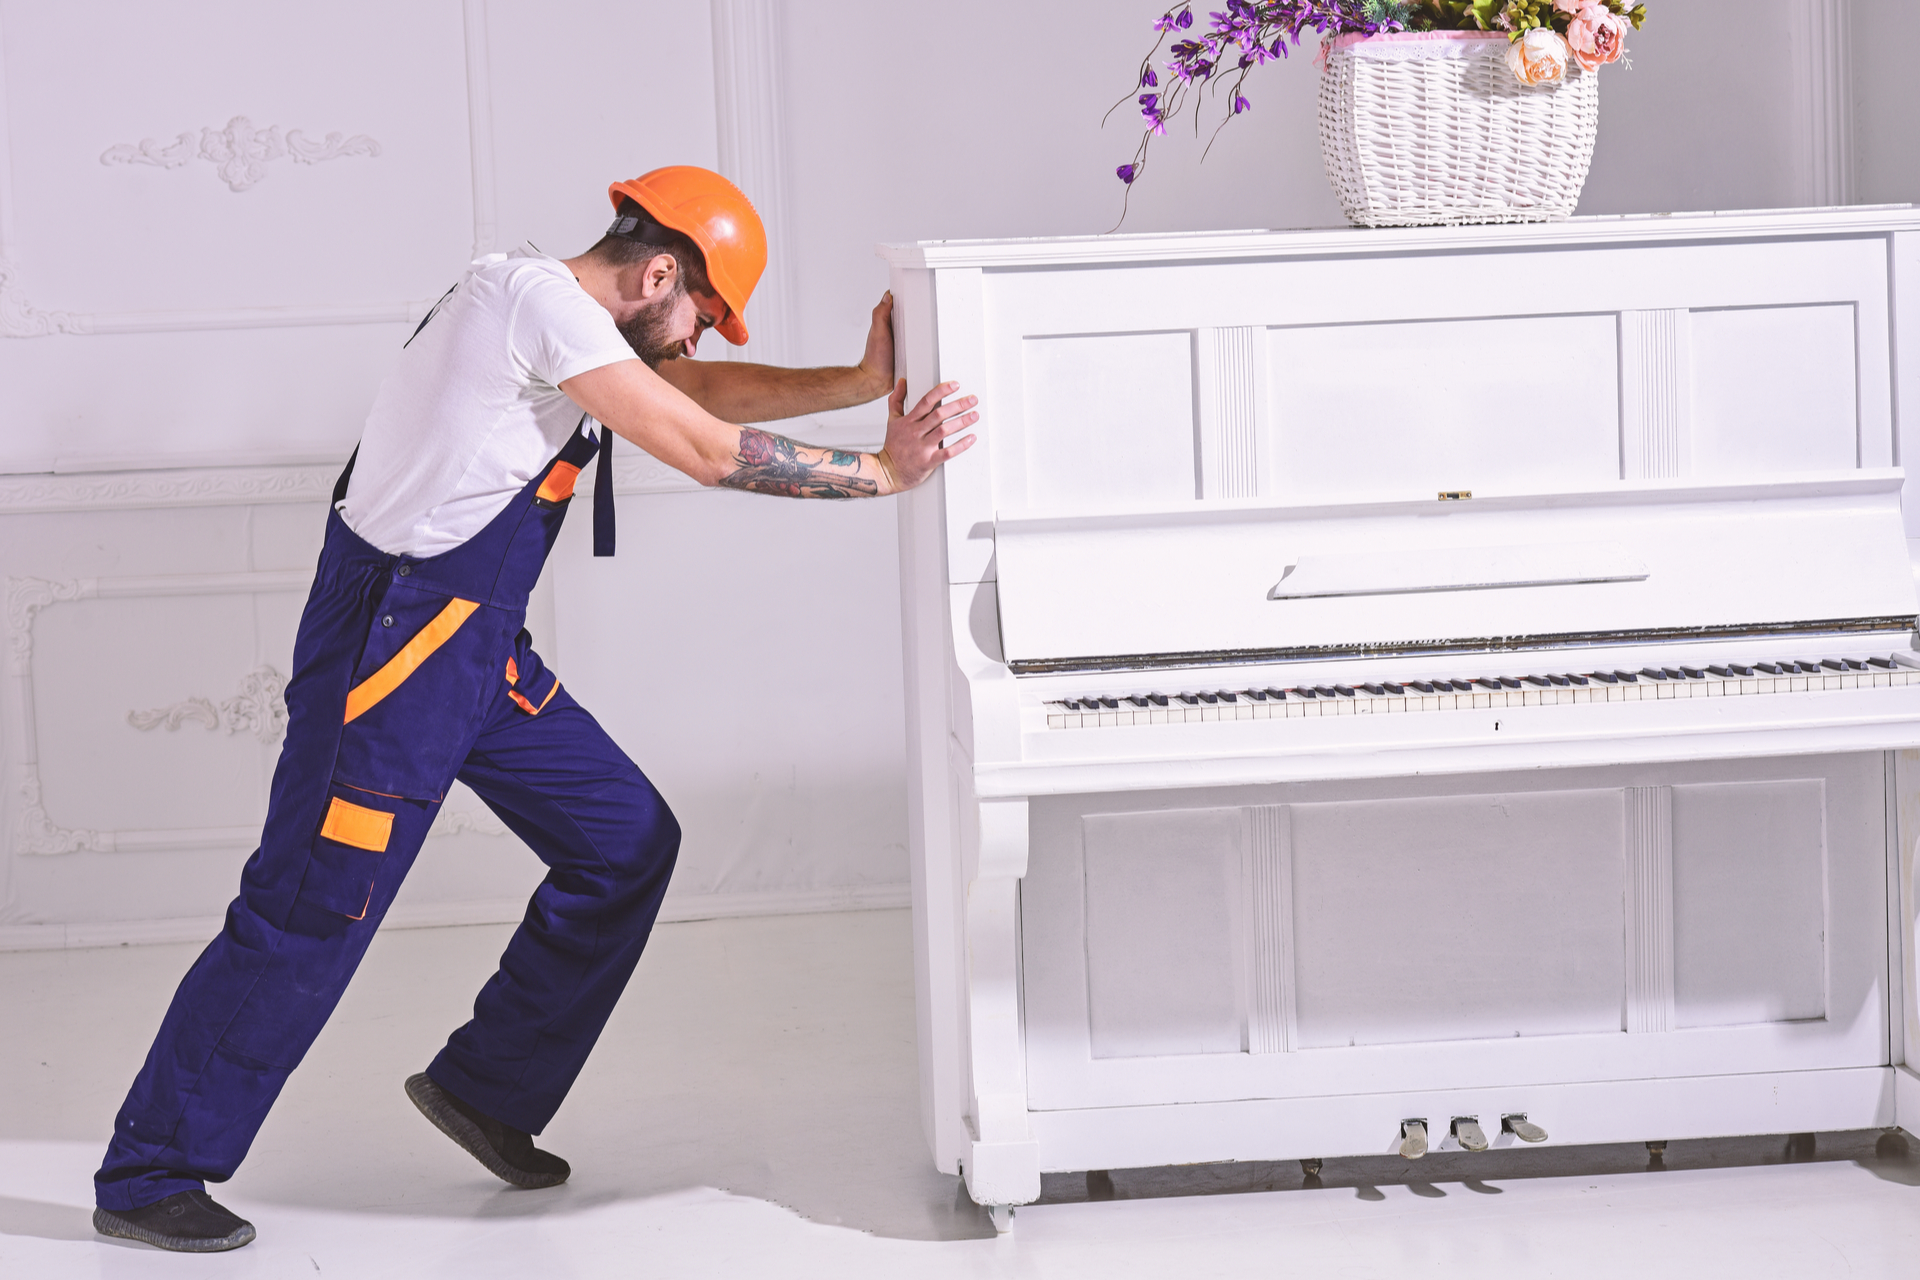 Man with beard worker in helmet and overalls pushes, put efforts to move piano